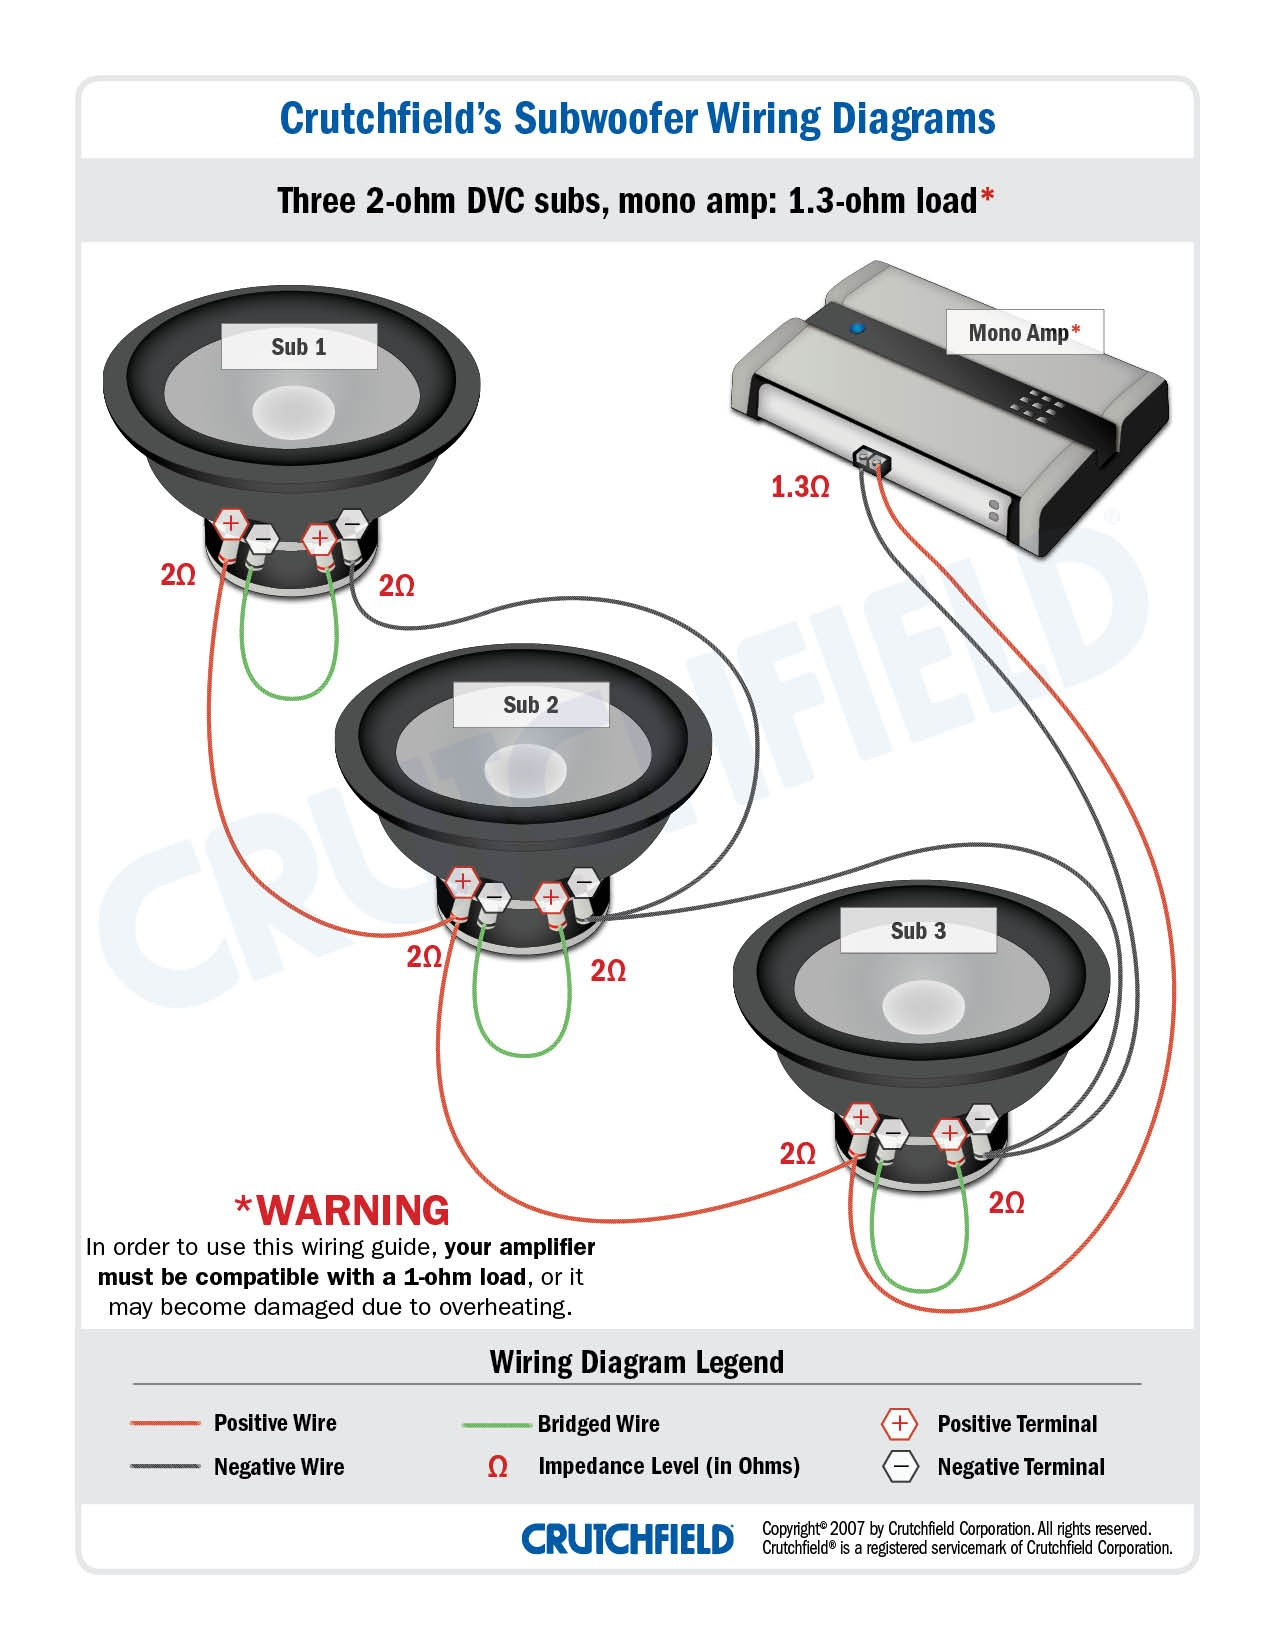 Subwoofer Wiring Diagrams 15